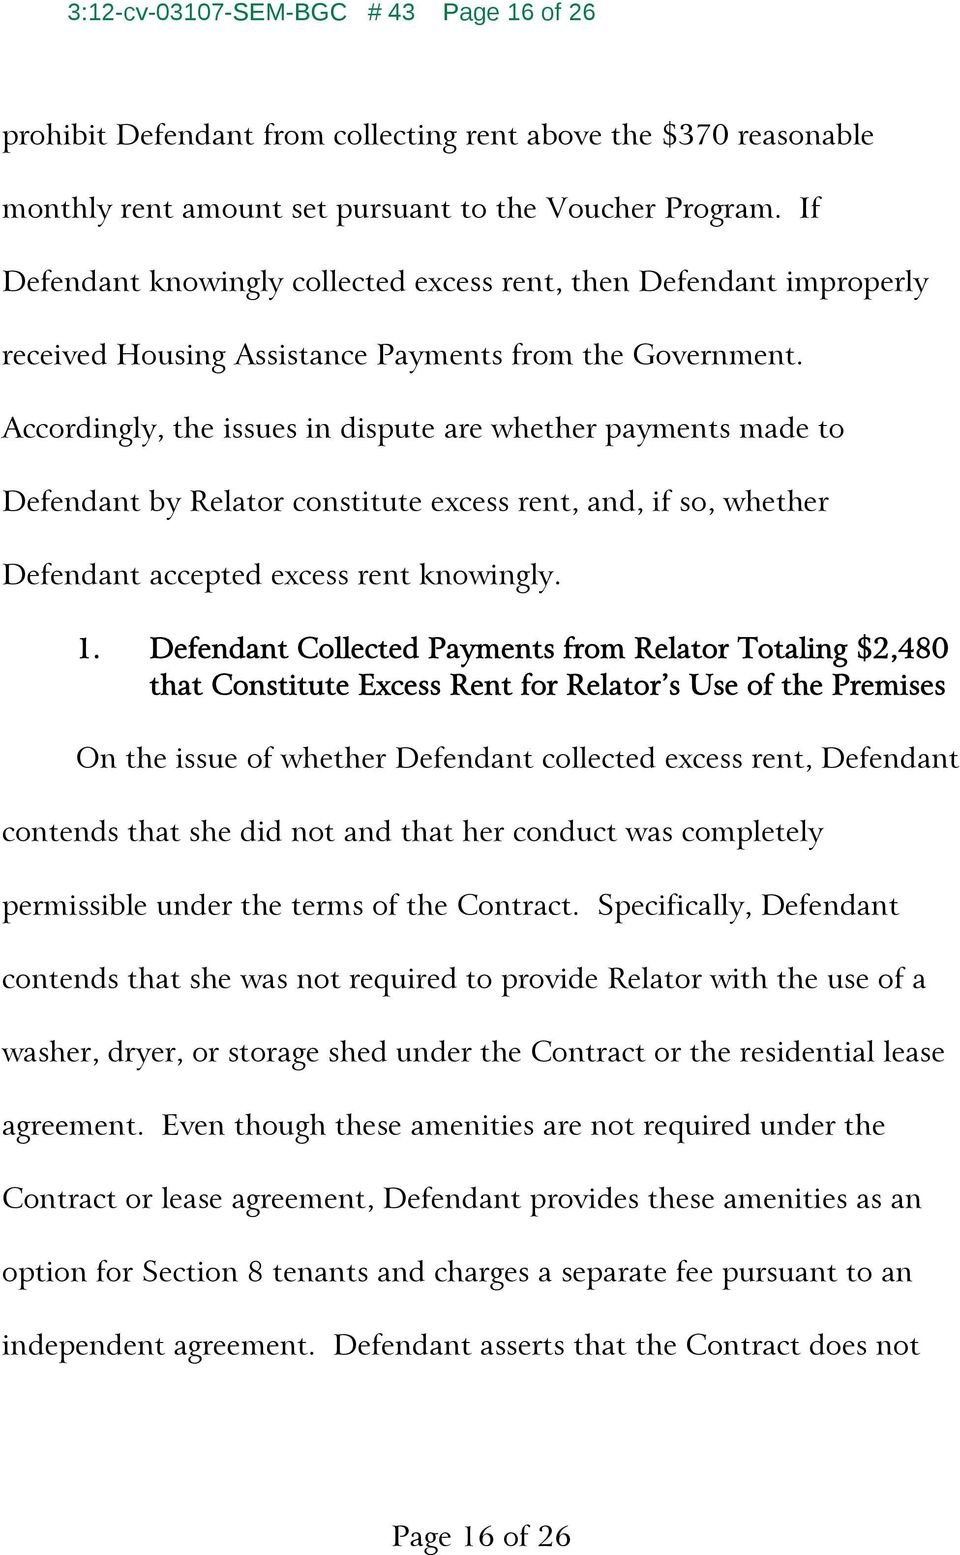 Accordingly, the issues in dispute are whether payments made to Defendant by Relator constitute excess rent, and, if so, whether Defendant accepted excess rent knowingly. 1.